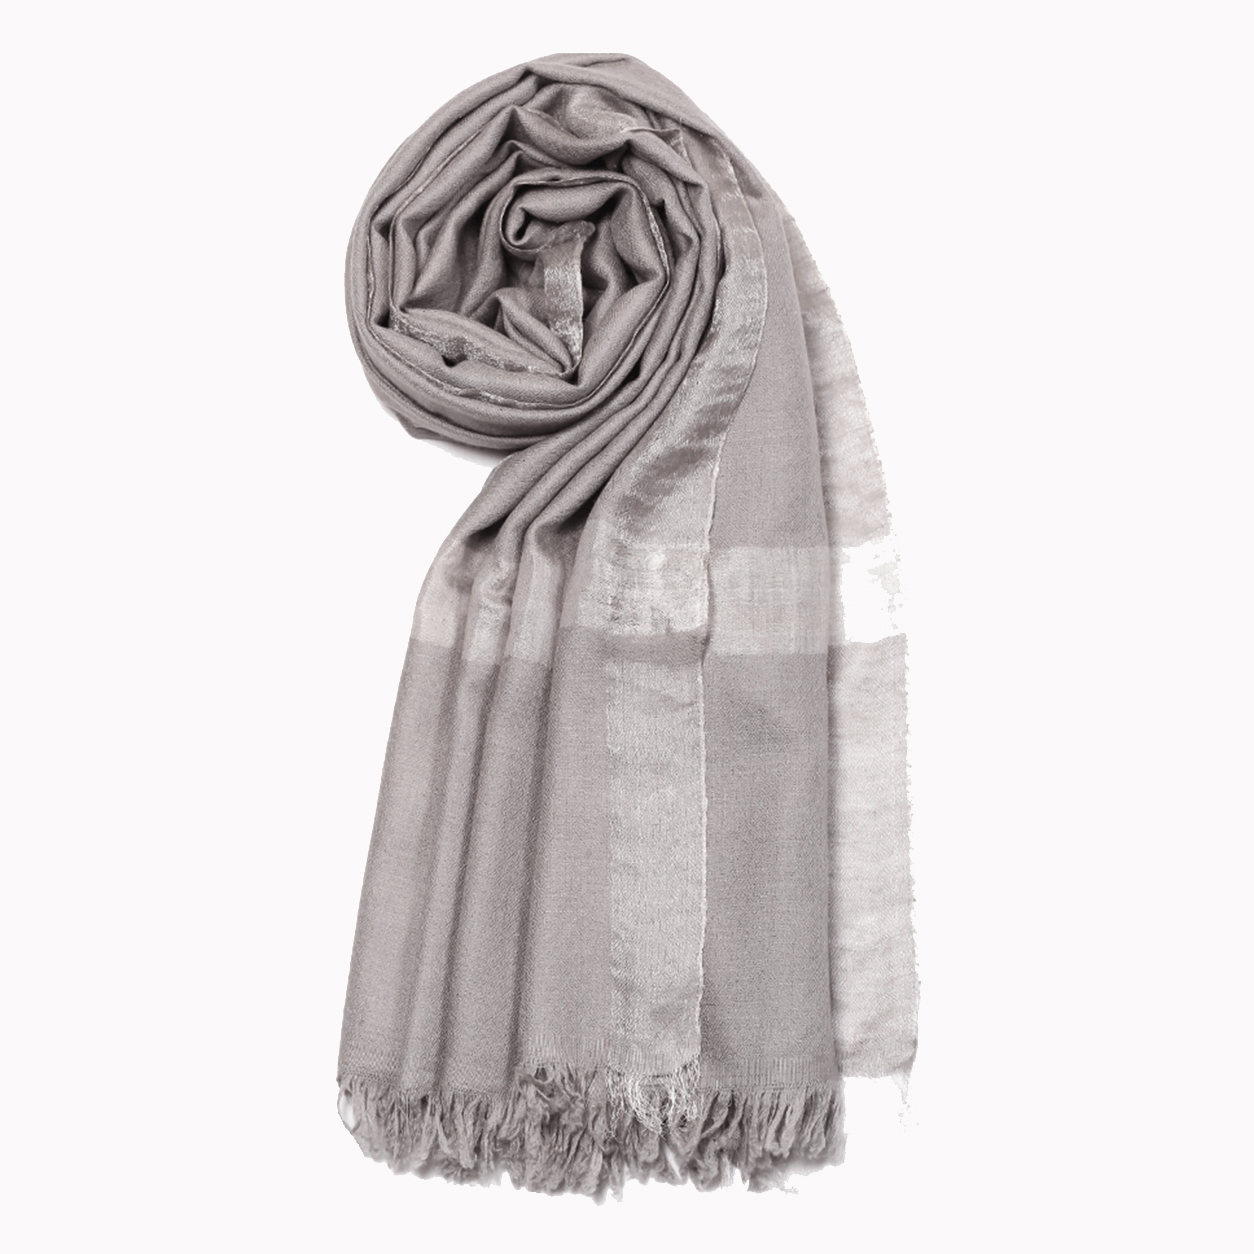 Metallic (Zari) Pashmina Stole - Spinel Grey